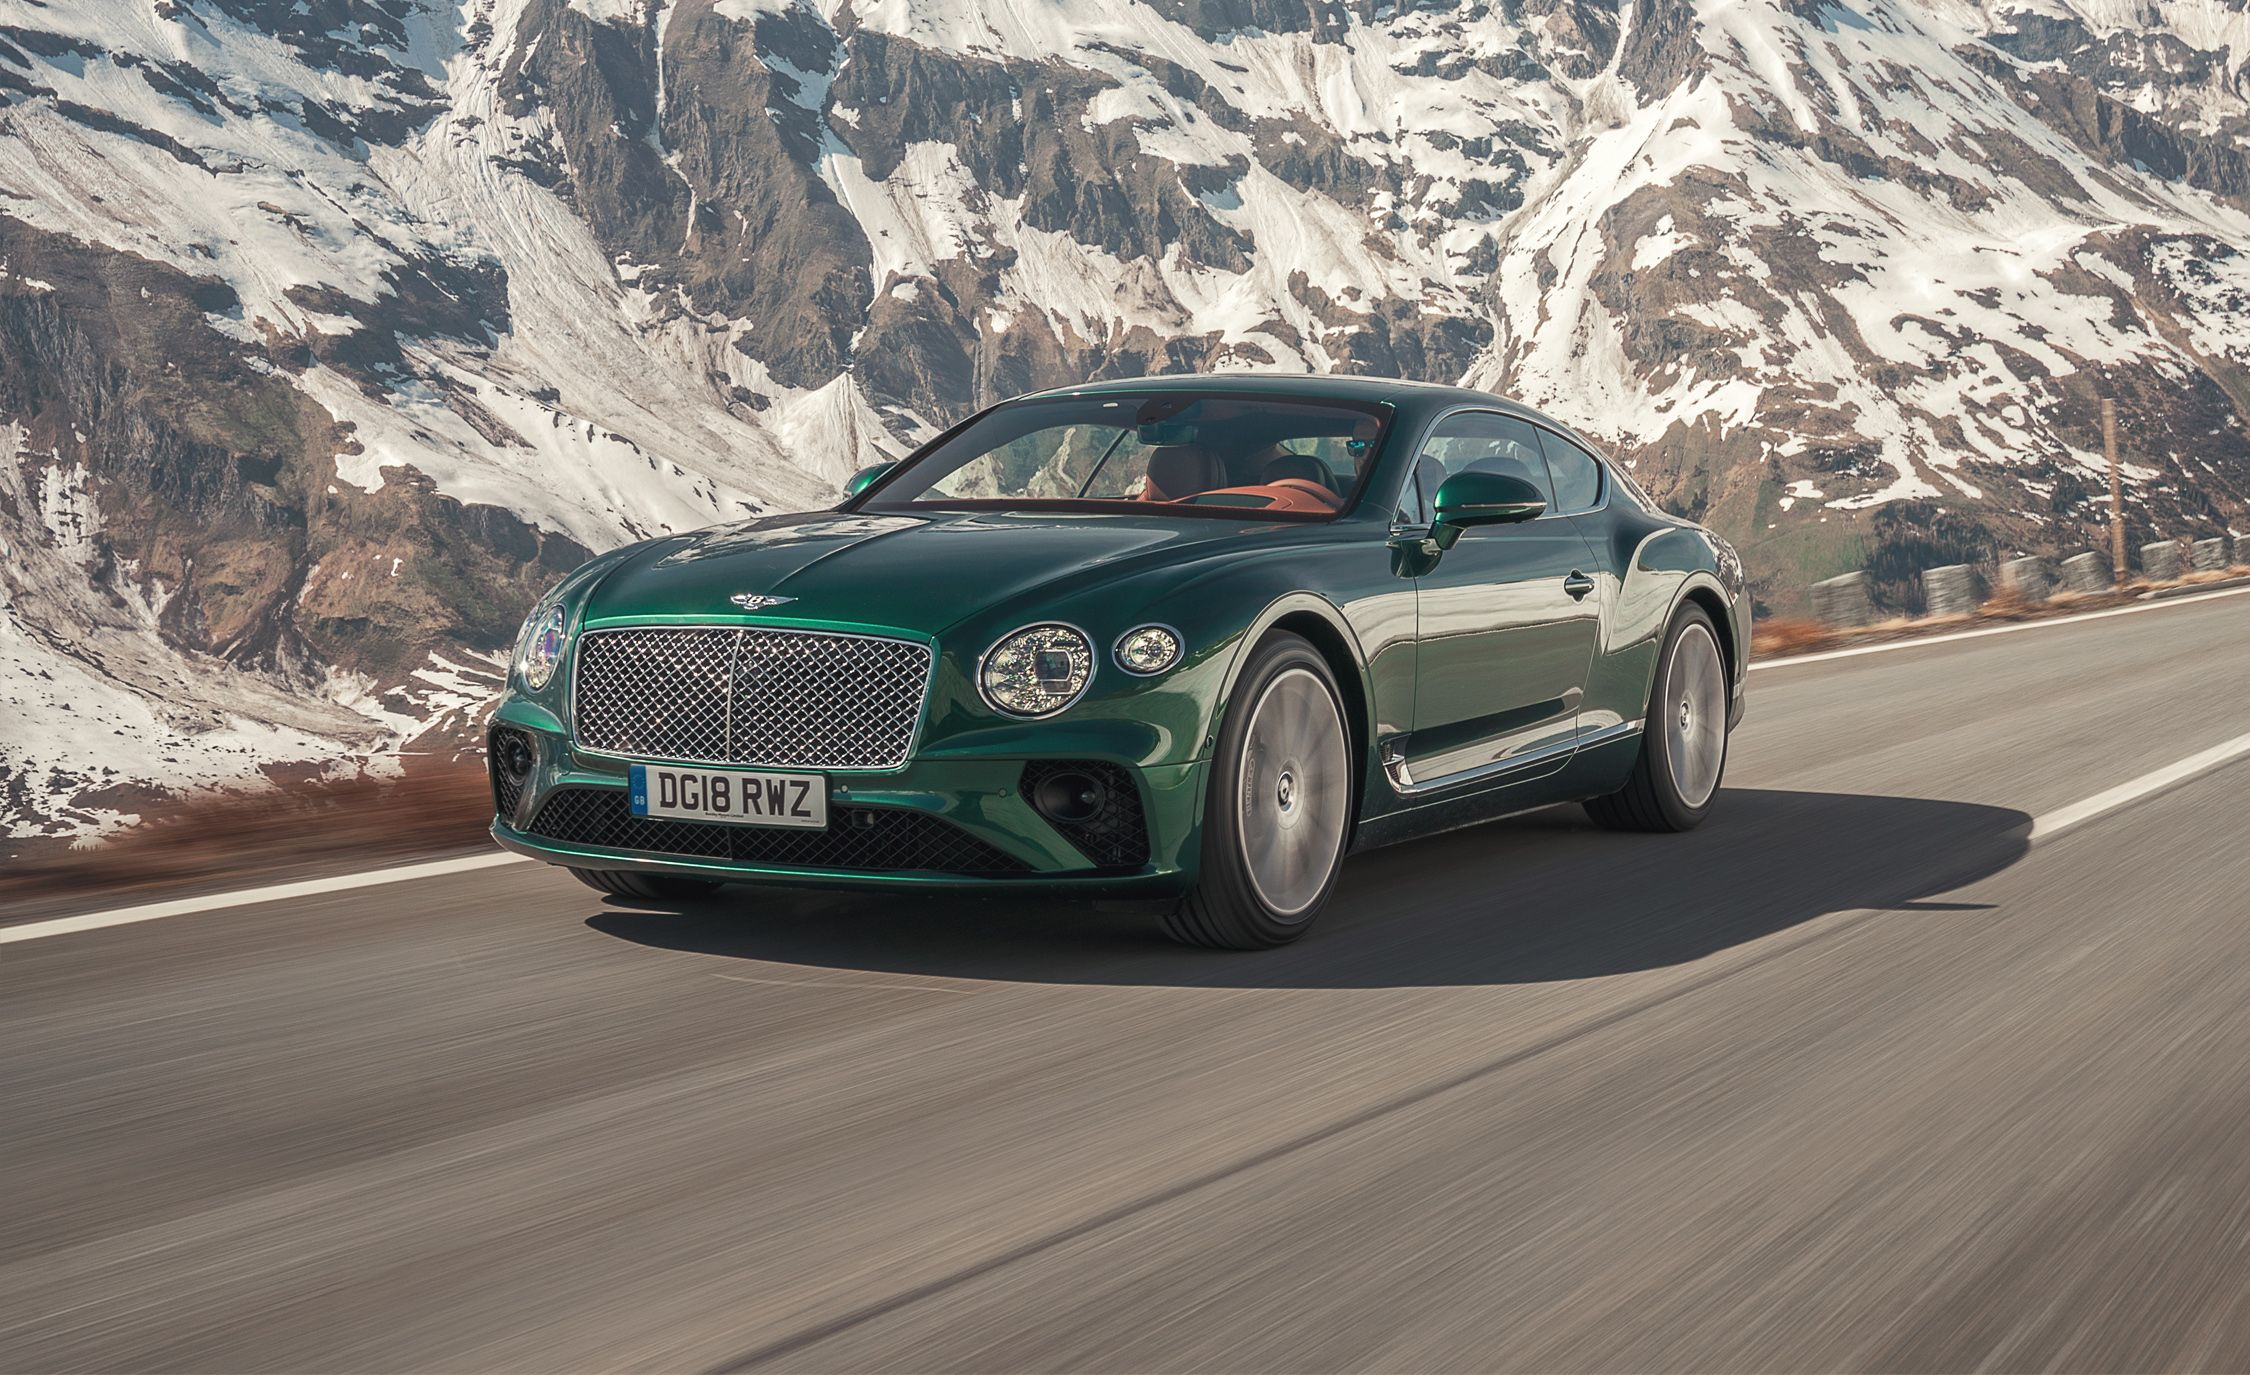 Bentley Continental Gt Reviews Bentley Continental Gt Price Photos And Specs Car And Driver